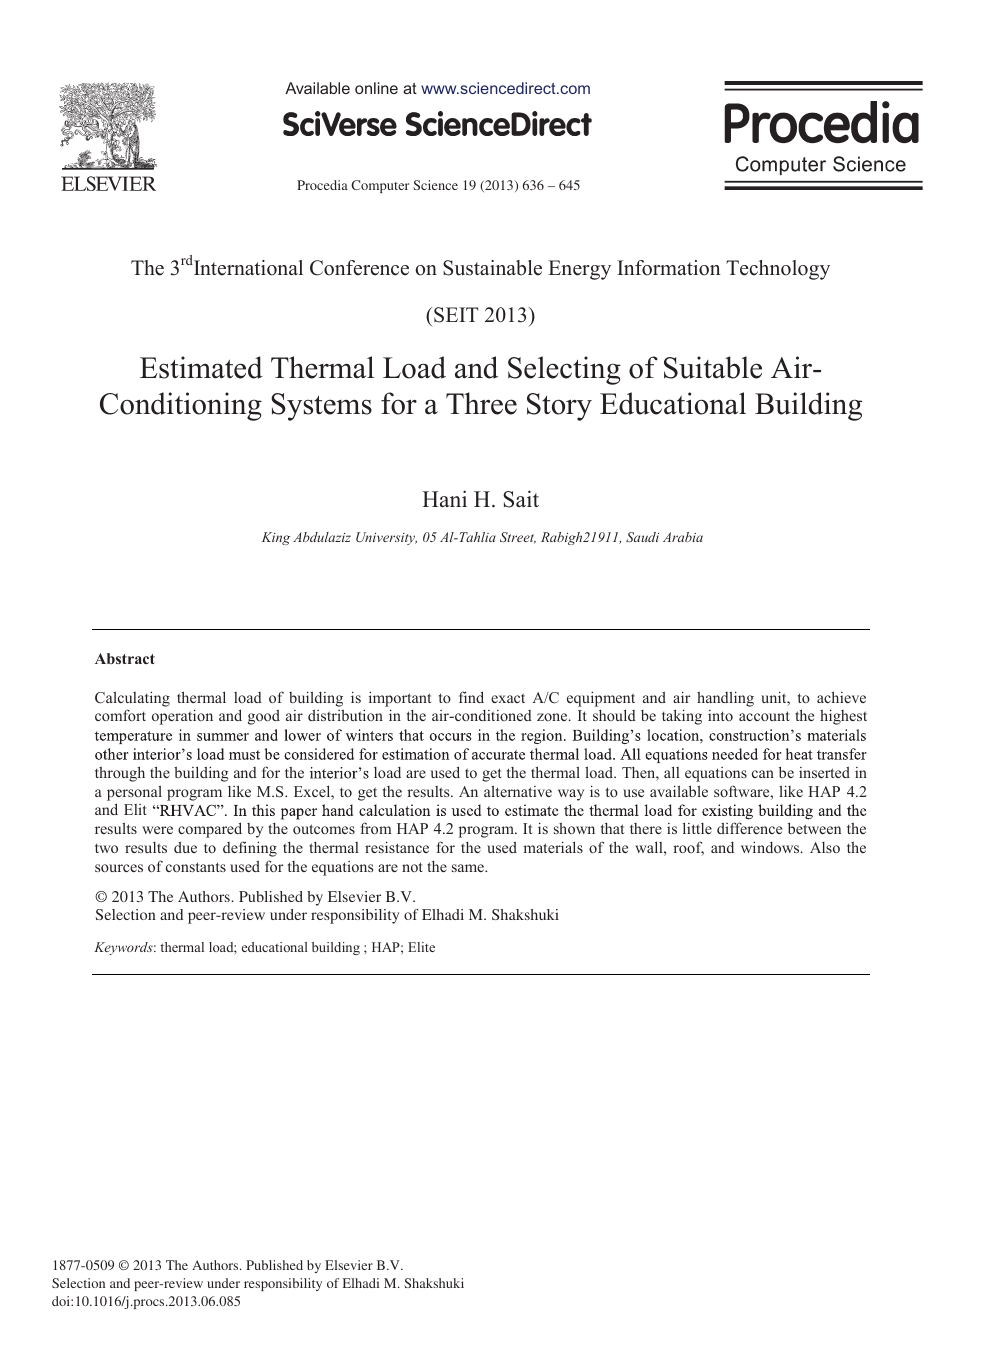 Estimated Thermal Load and Selecting of Suitable Air